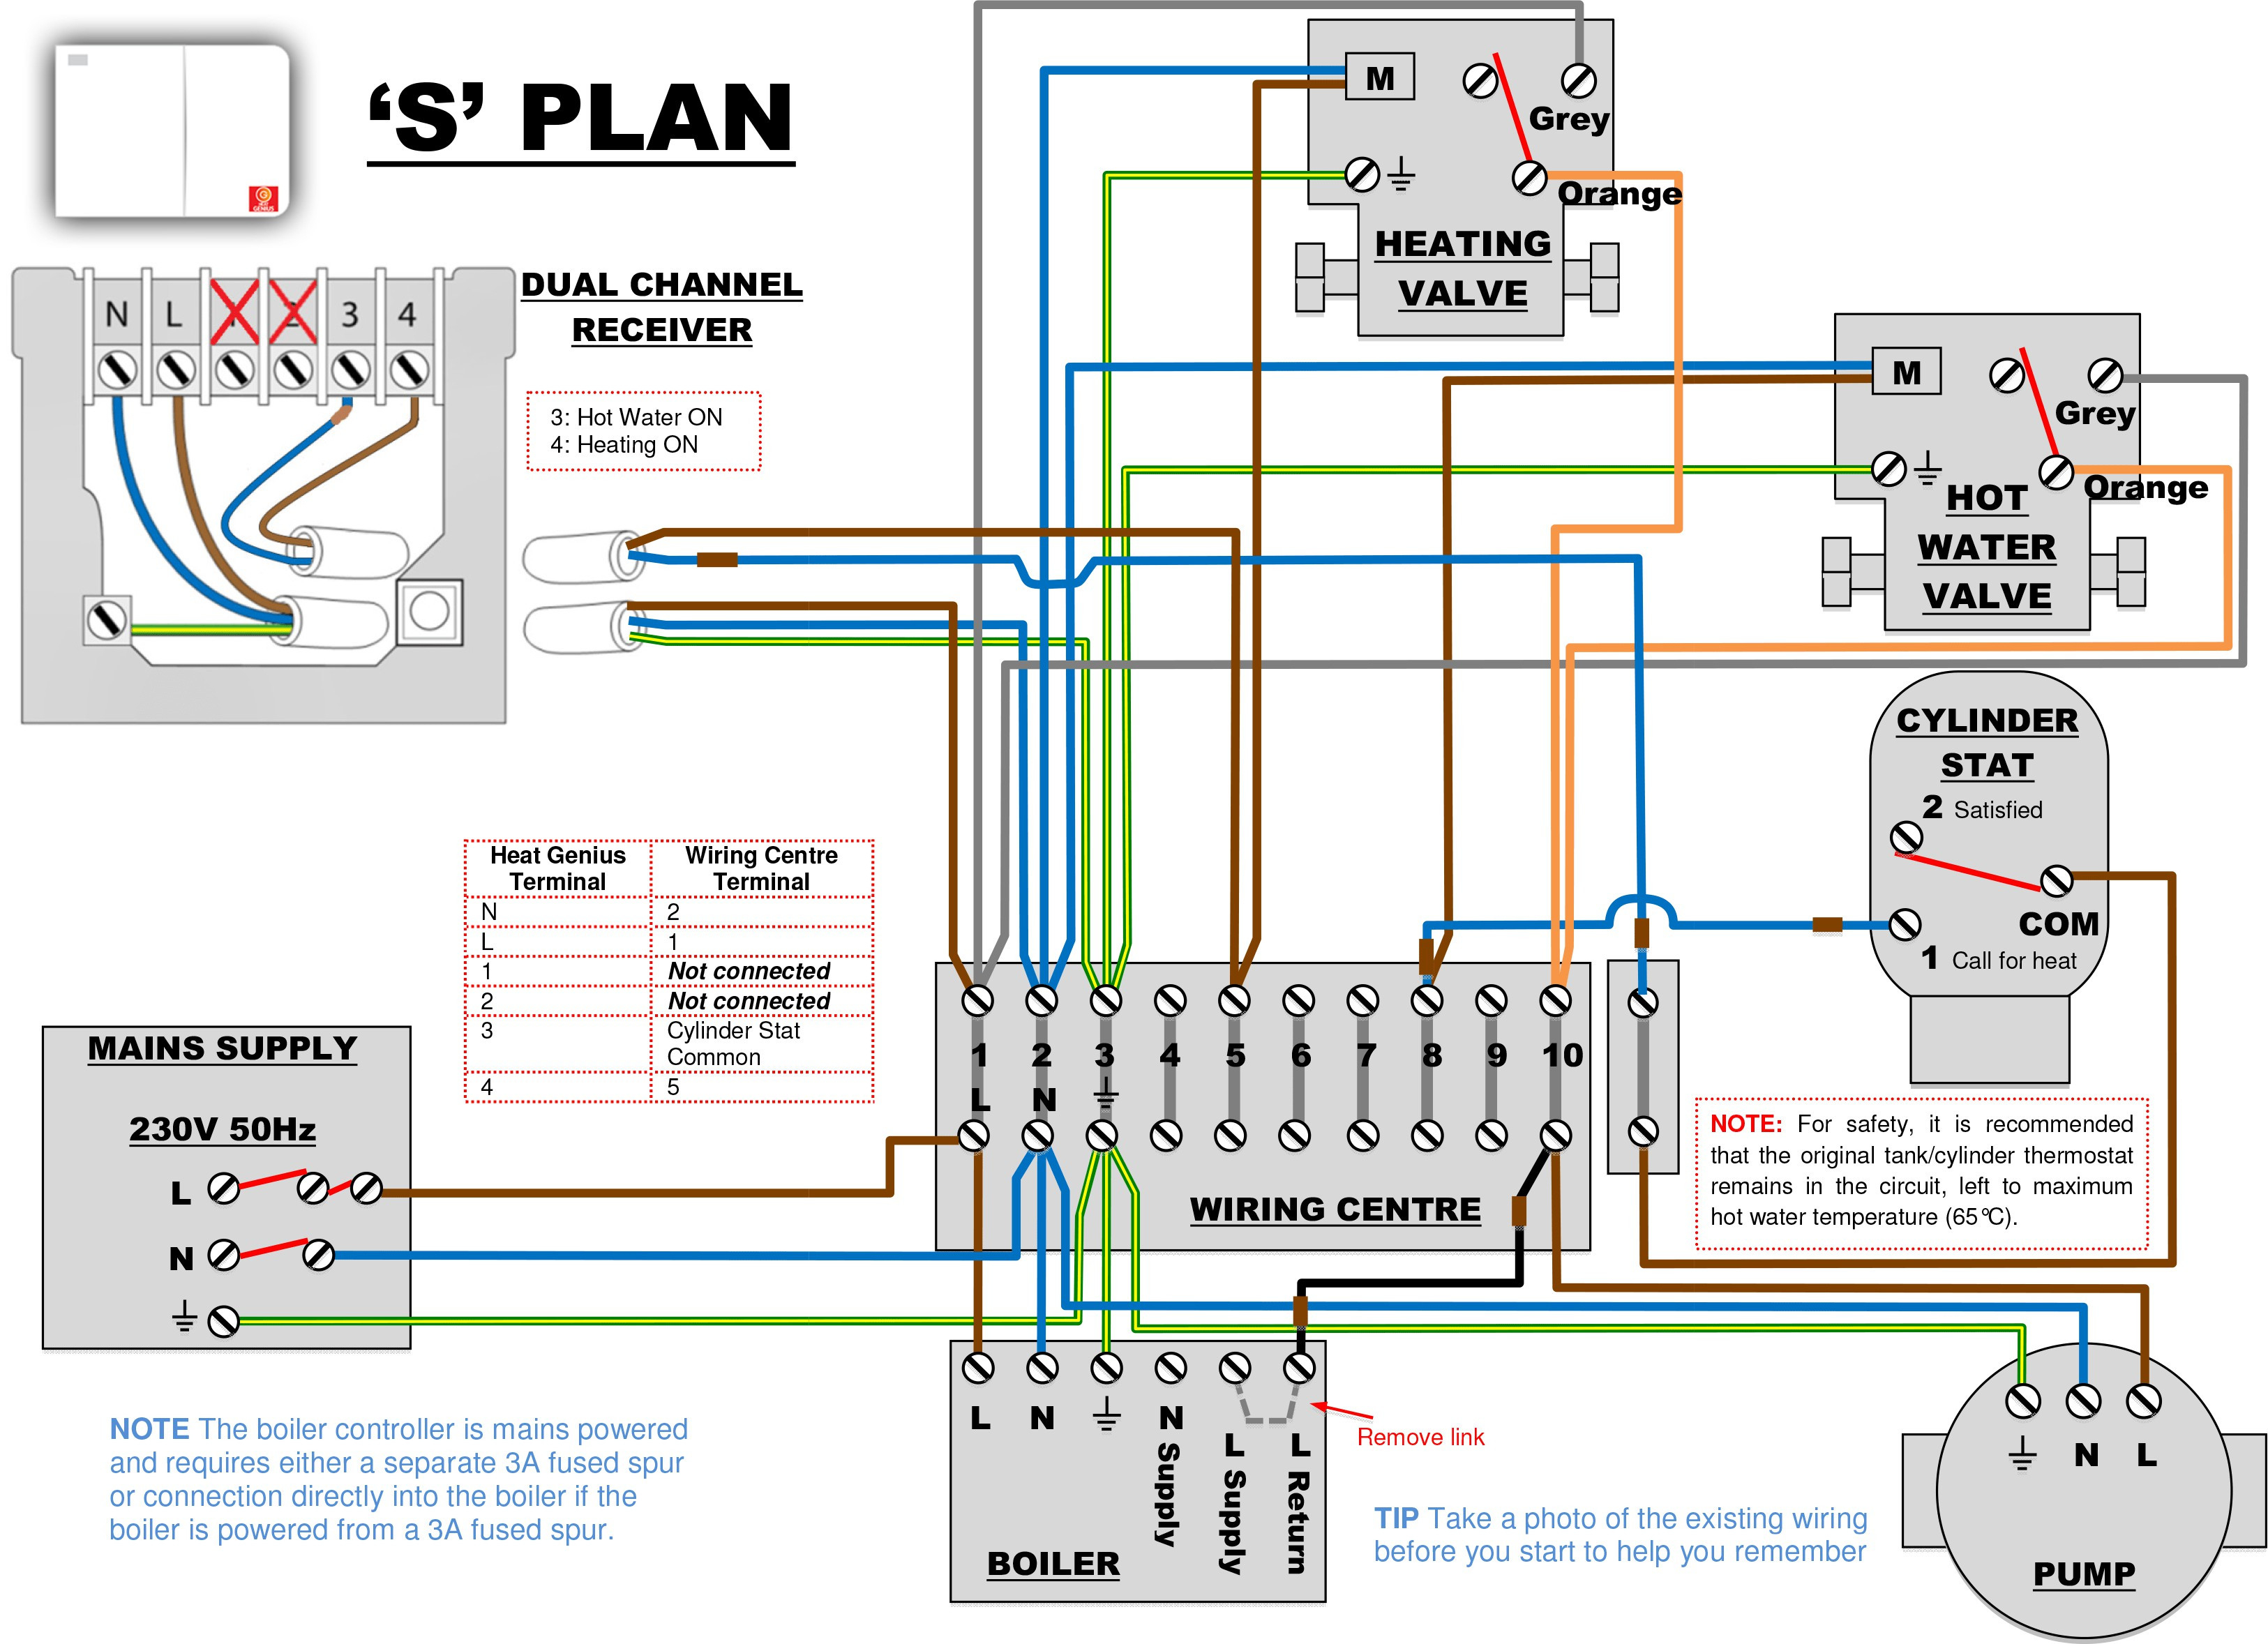 Wiring Diagram for the Nest thermostat - Nest Wireless thermostat Wiring  Diagram Valid Nest thermostat Wiring